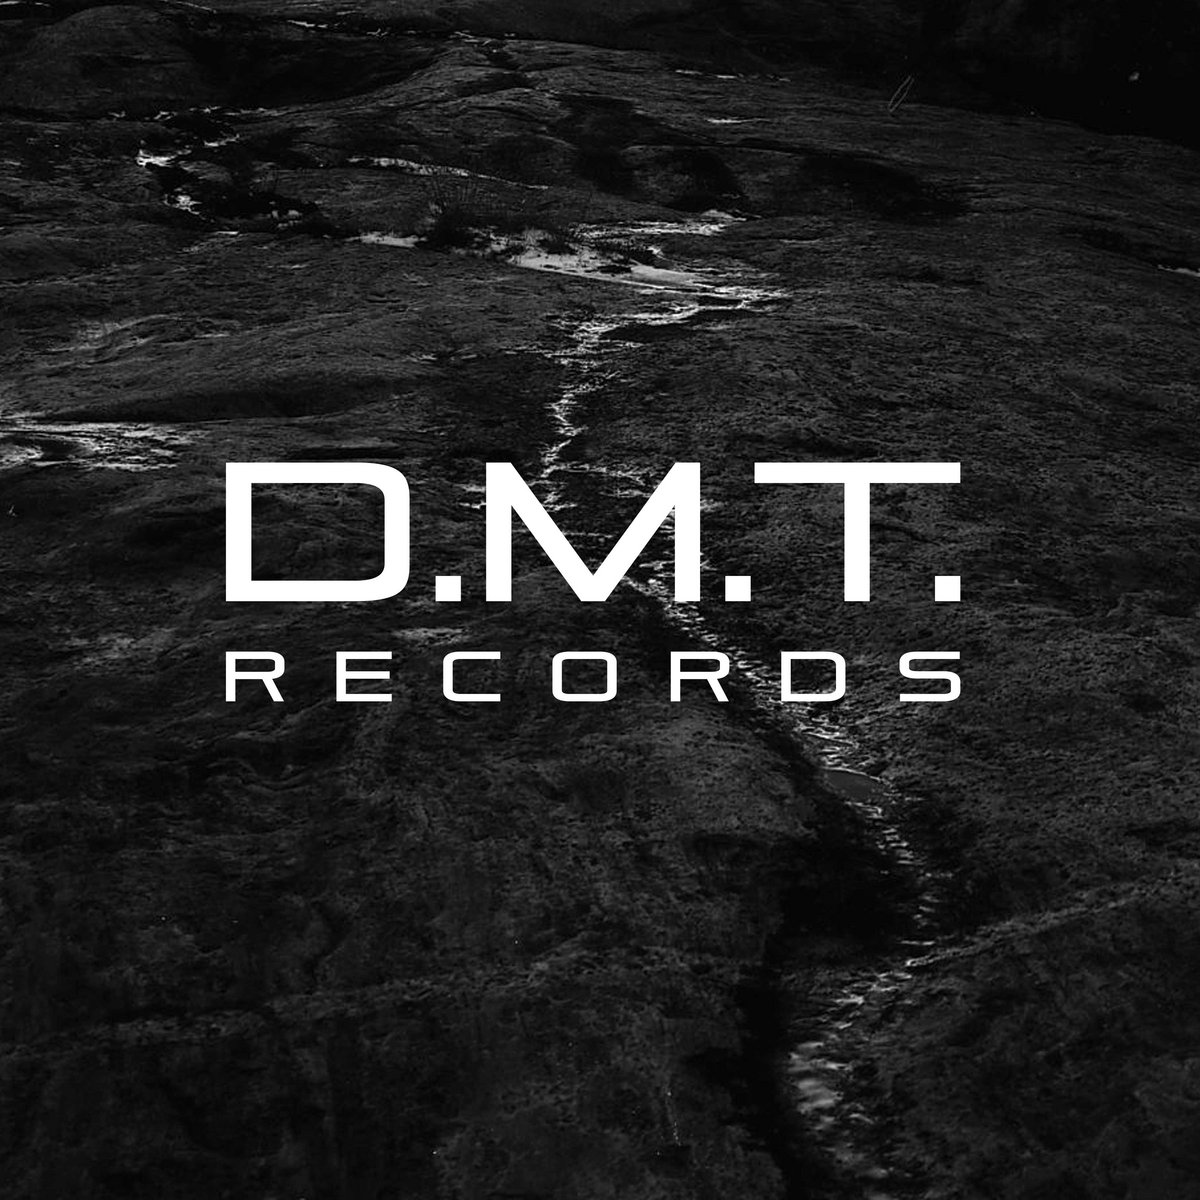 DMT records